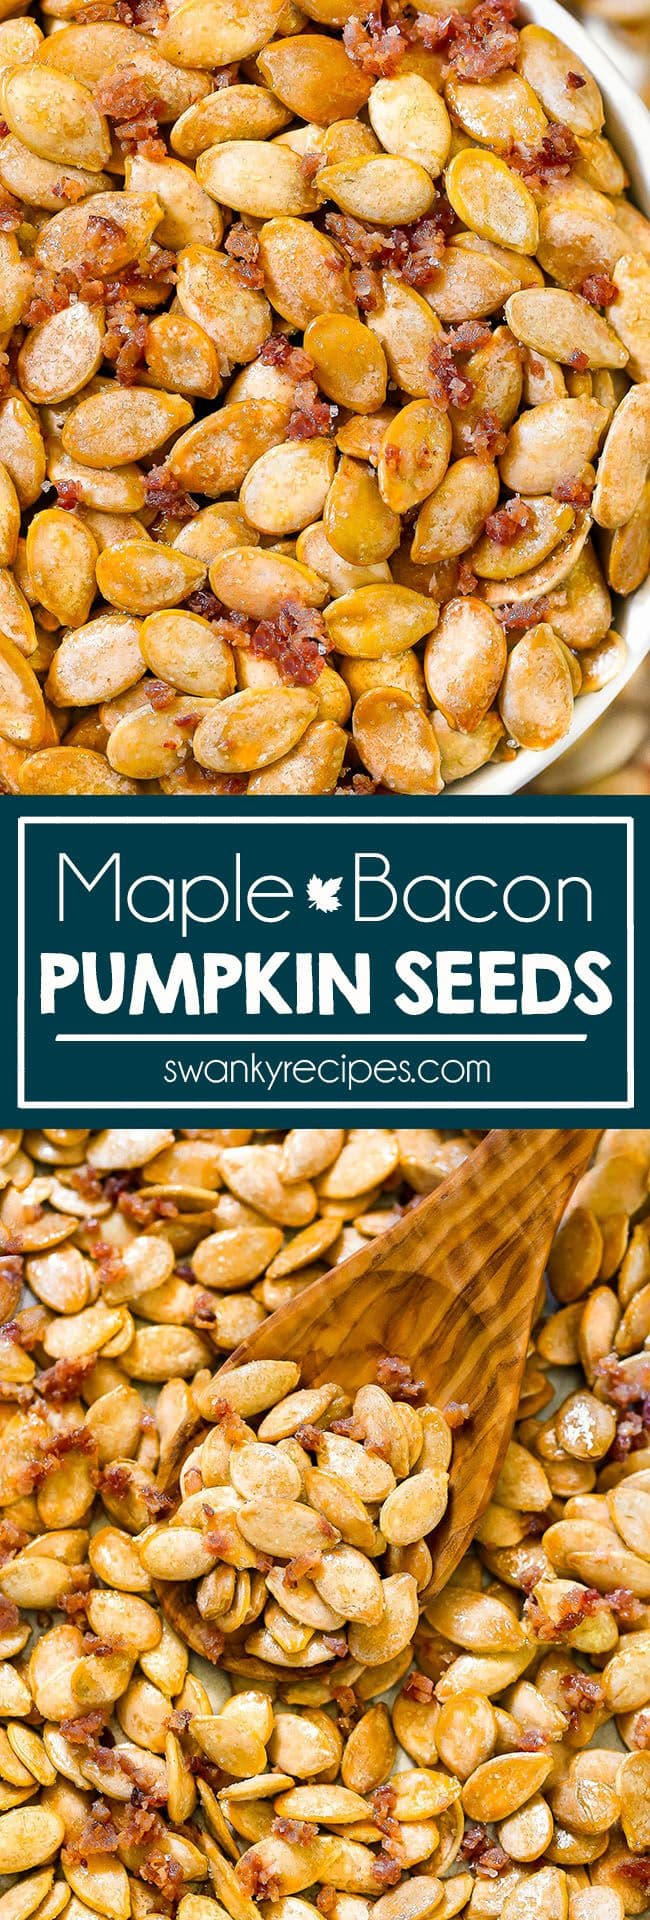 Sweet salty Maple Bacon Pumpkin Seeds. Roasted pumpkin seeds with real maple syrup, bacon grease, and bacon salt.